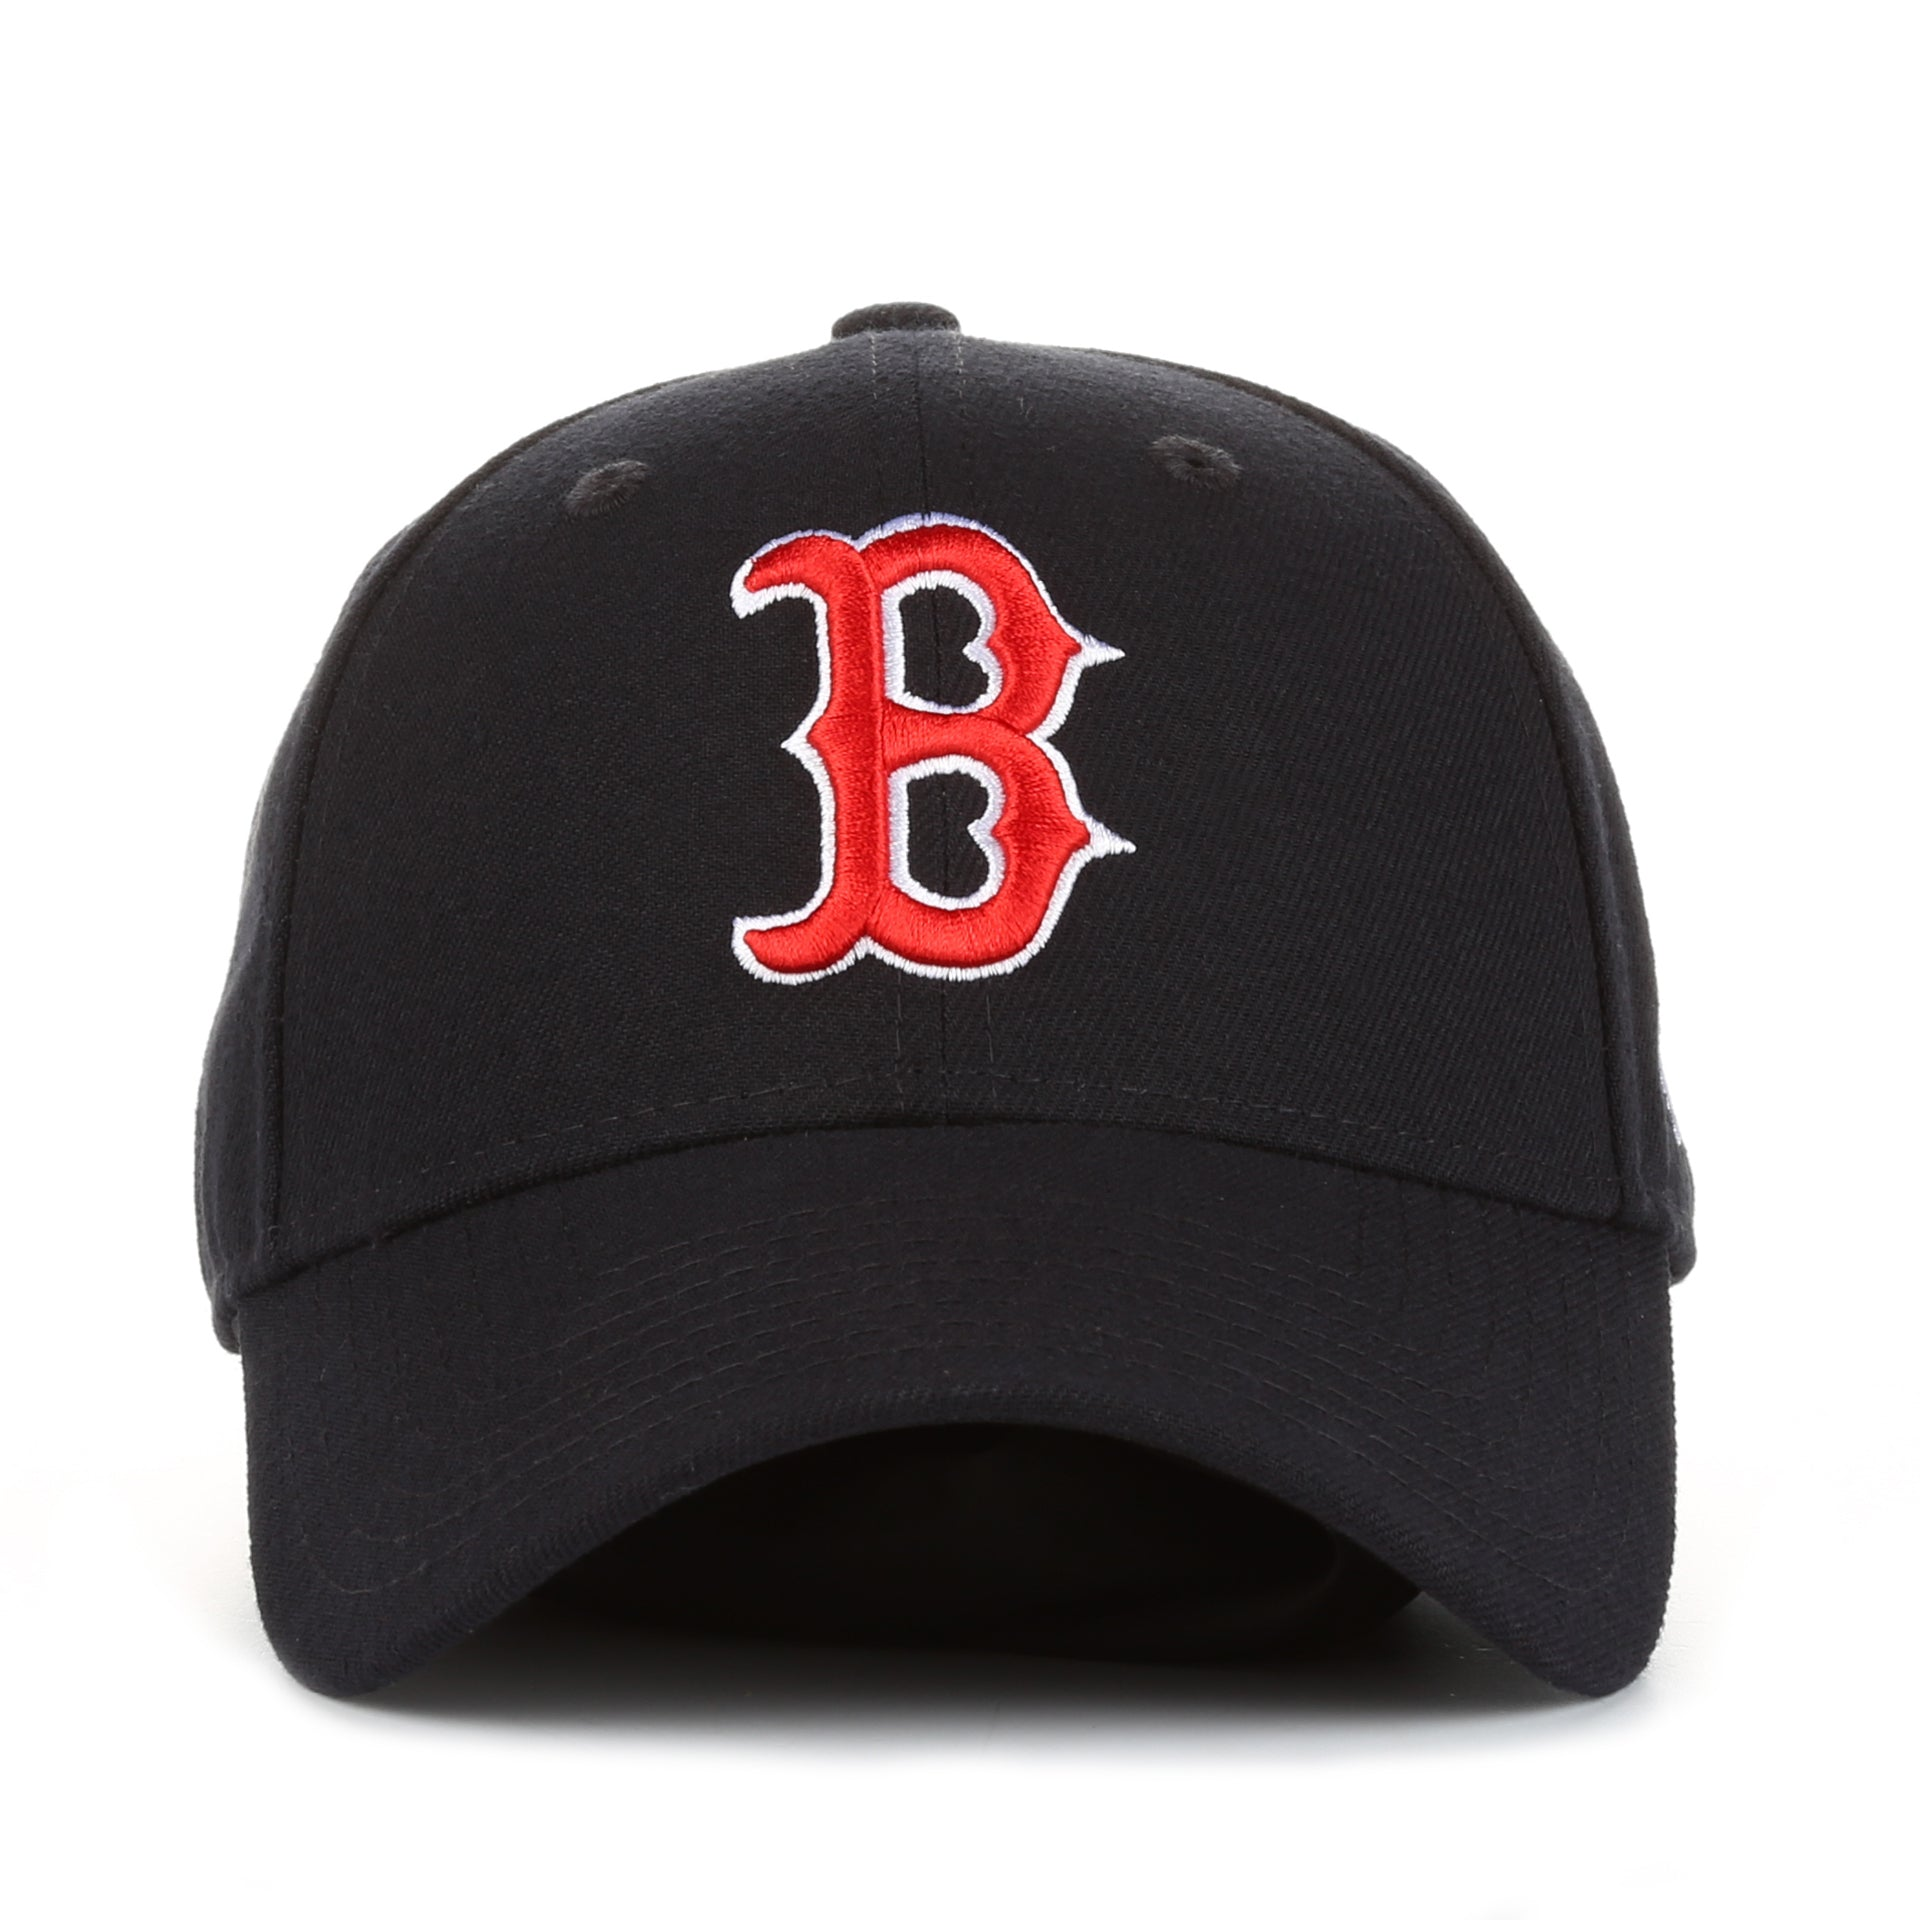 5f9c9c96d61 New Era 9Forty The League Game Cap - Boston Red Sox Navy - New Star